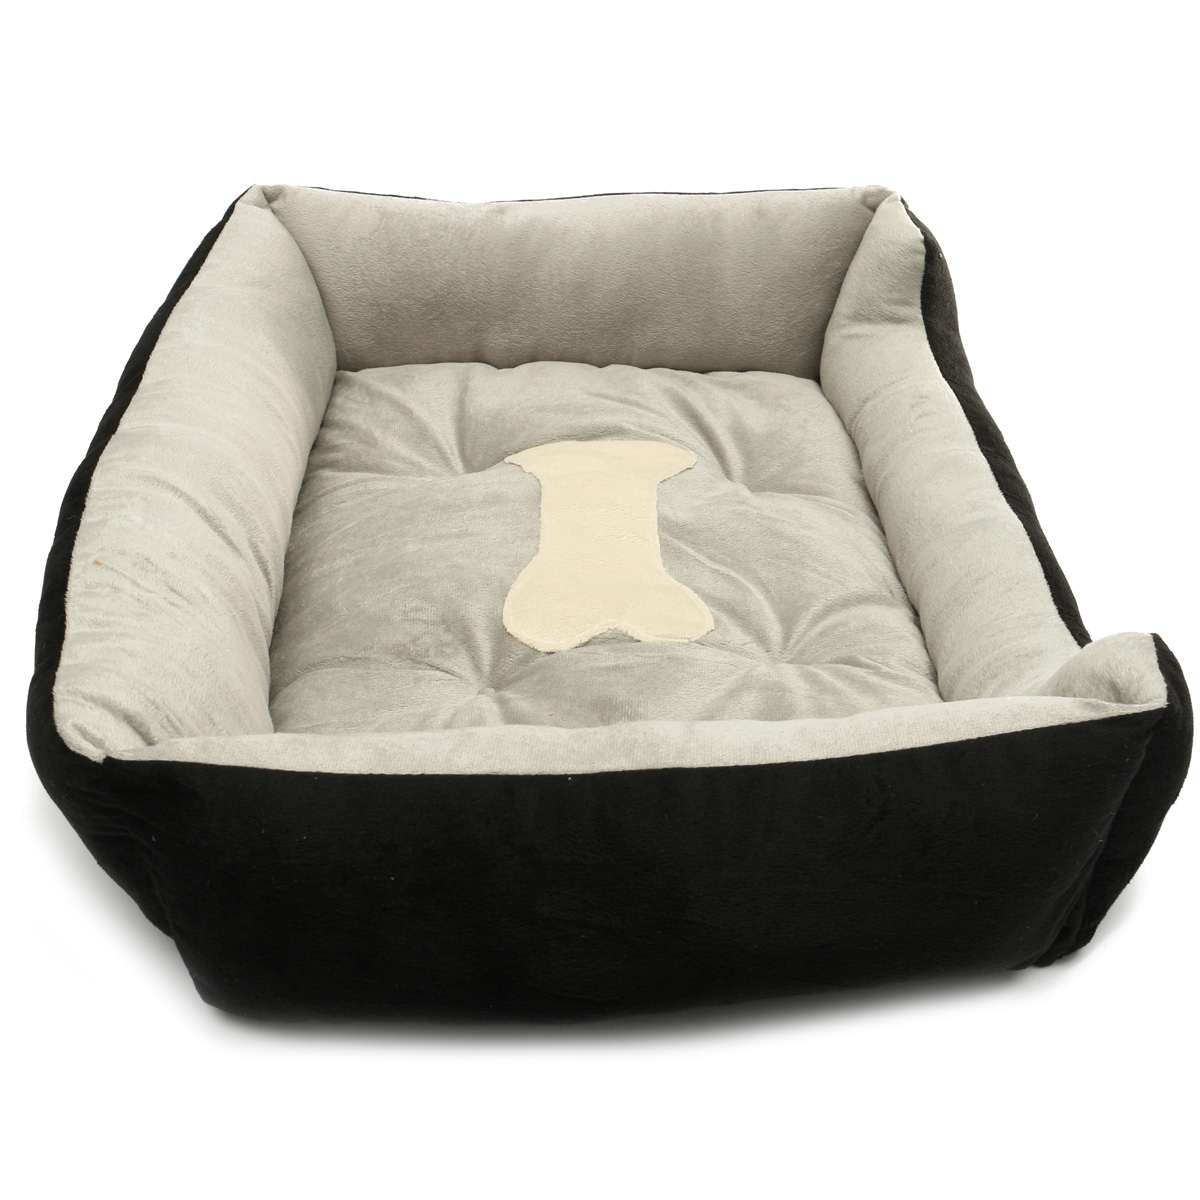 Big Size Large Pet Bed Cushion Dog Warm Nest Bed Puppy Cat Soft Fleece Cozy Mat Pad Kennel House